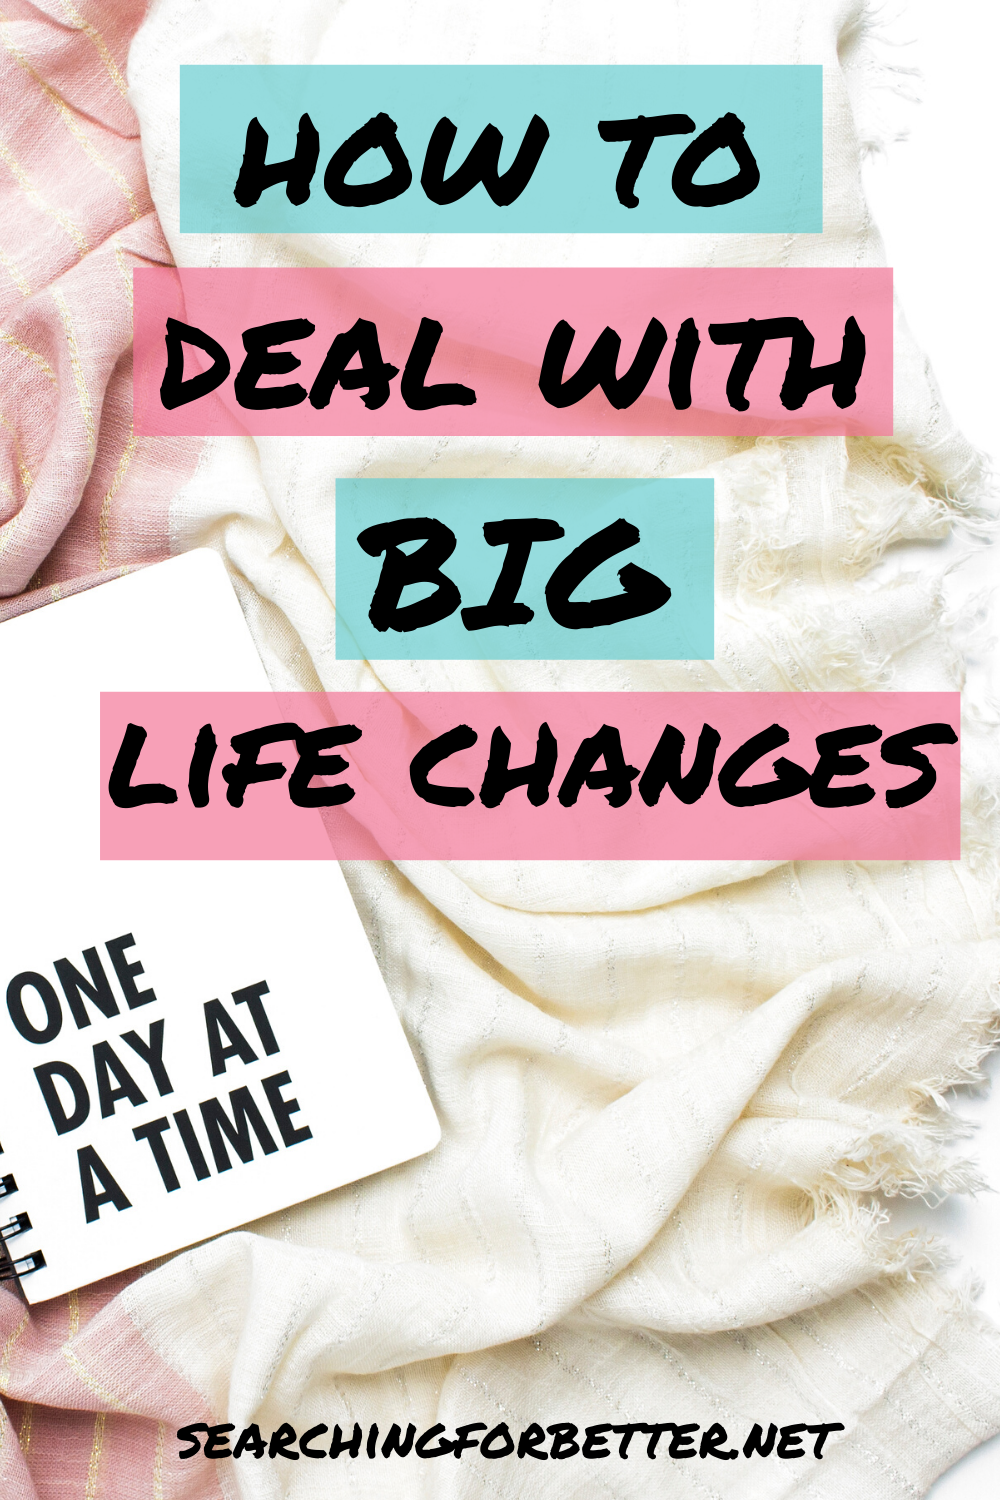 How To Deal With Big Life Changes. These simple tips are ways to help you cope with stress, anxiety and all sorts of emotions during big life changes. These tips are great for women who are struggling to deal with changes in their life - big or small!